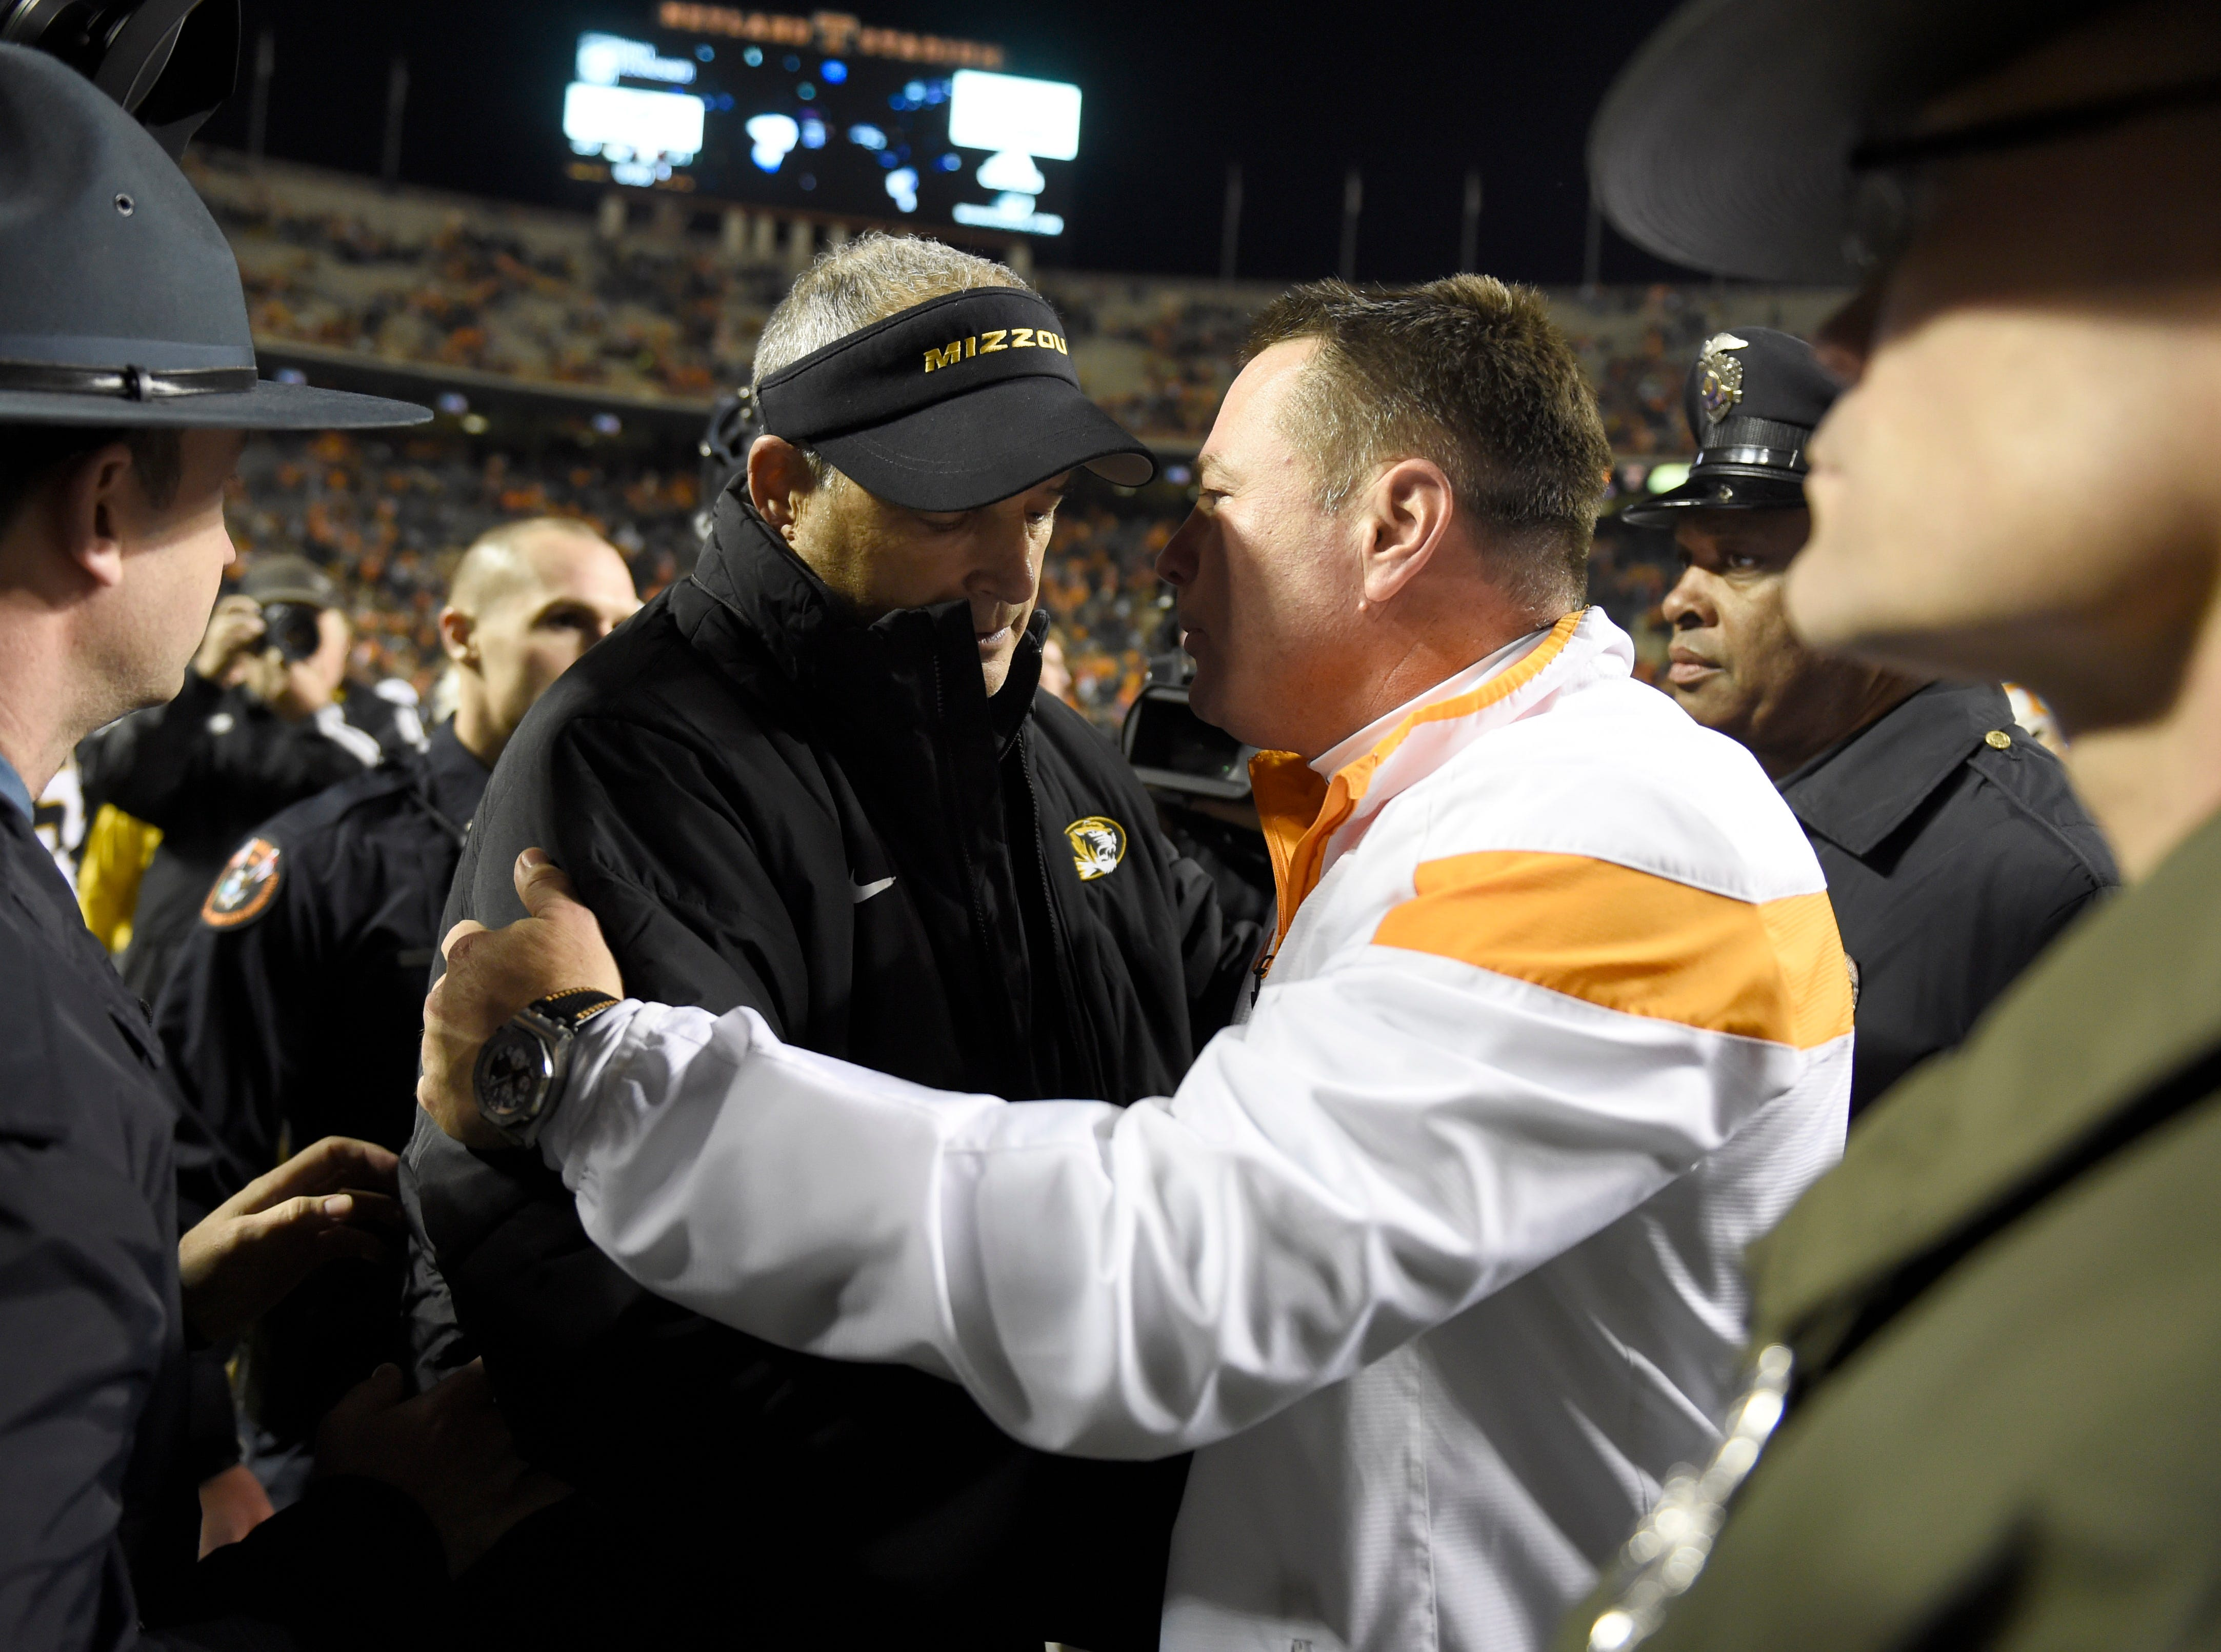 Missouri head coach Gary Pinkel greets Tennessee coach Butch Jones after their college football game at Neyland Stadium in Knoxville, Tenn., Saturday, Nov. 22, 2014.  Missouri won 29-21.